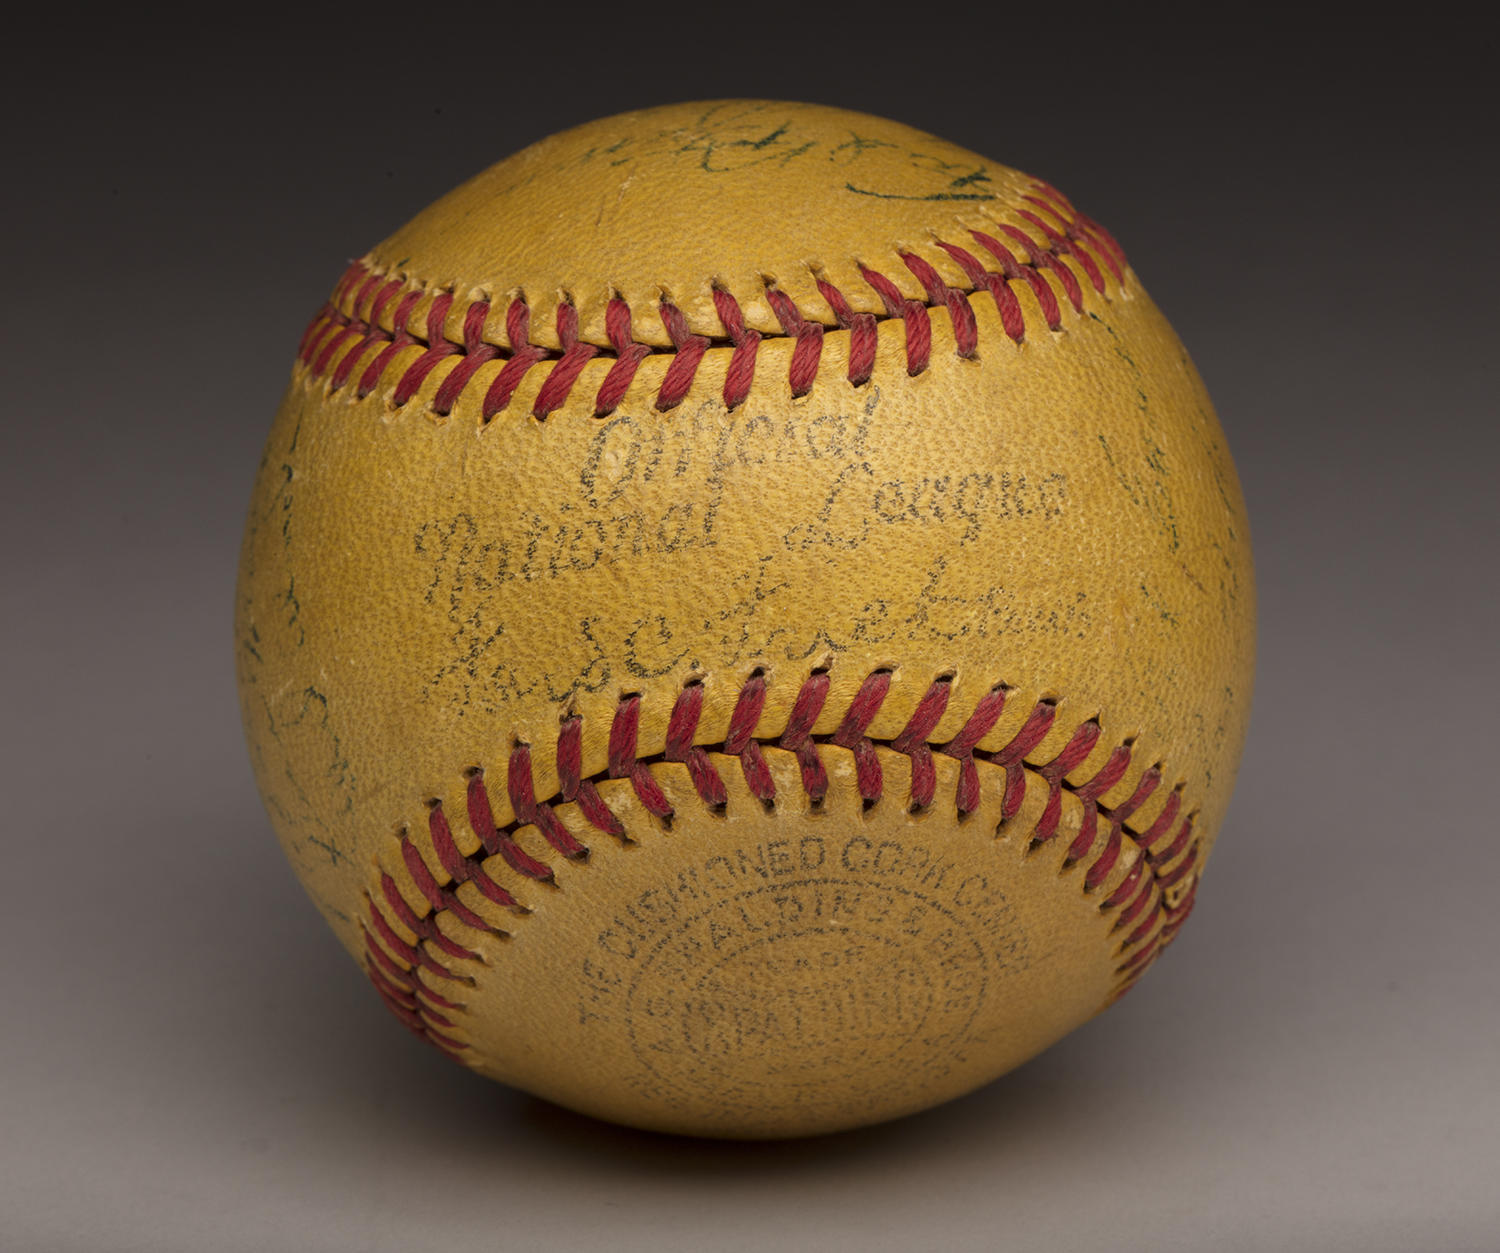 These experimental, high-visibility yellow baseballs made a noteworthy but short-lived appearance when they were used in the big leagues in the late 1930s. (By Photographer Milo Stewart Jr./National Baseball Hall of Fame and Museum)